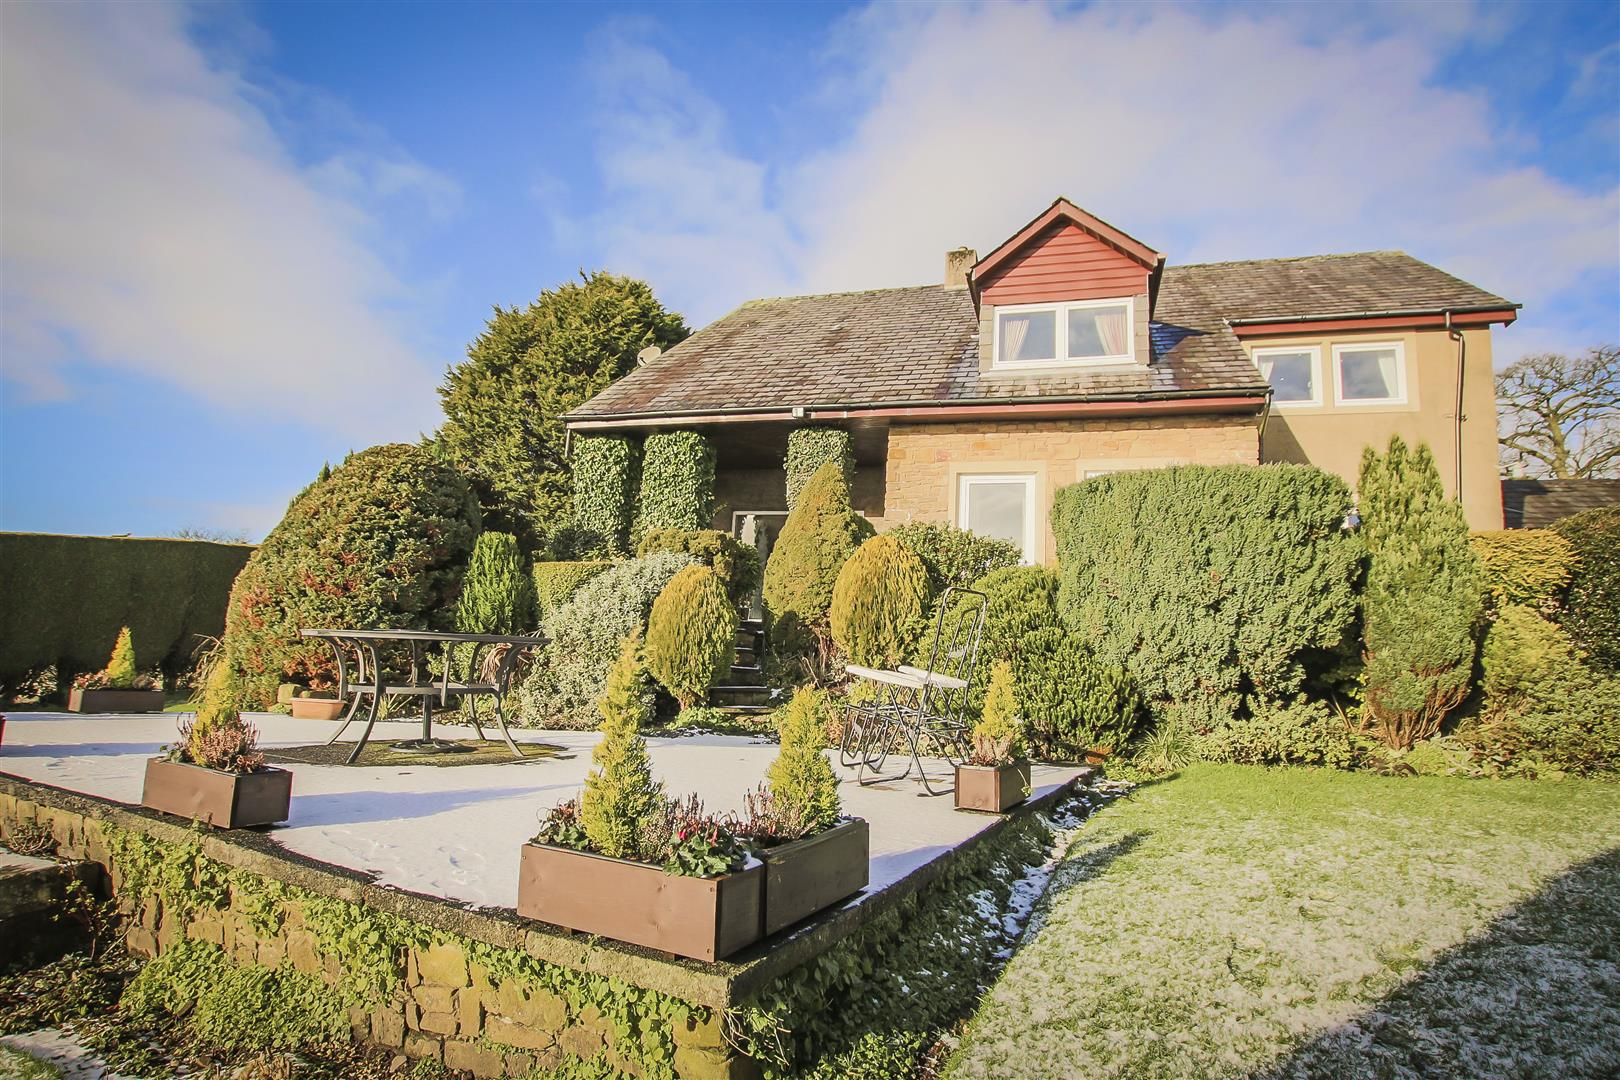 4 Bedroom Detached House For Sale - Image 10